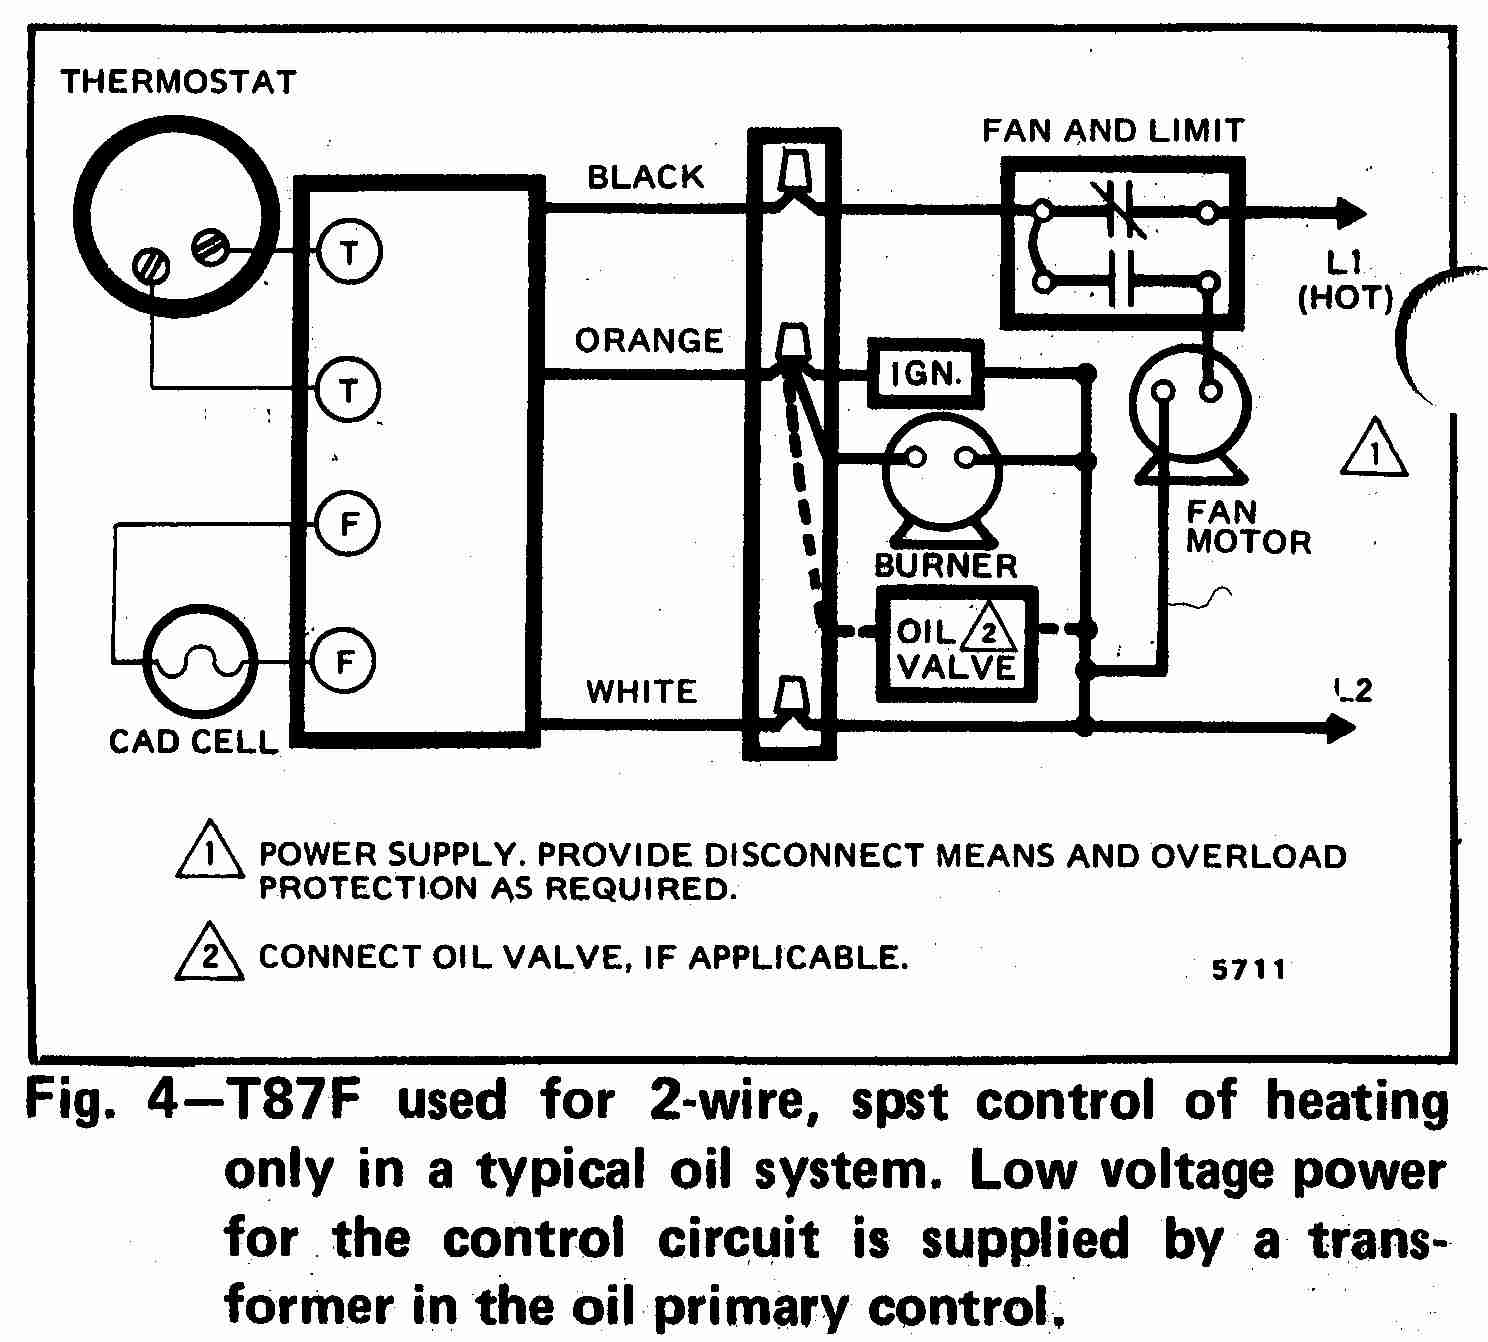 room thermostat wiring diagrams for hvac systems rh inspectapedia com Honeywell Zone Valve Wiring Diagram Honeywell Smart Valve Wiring Diagram